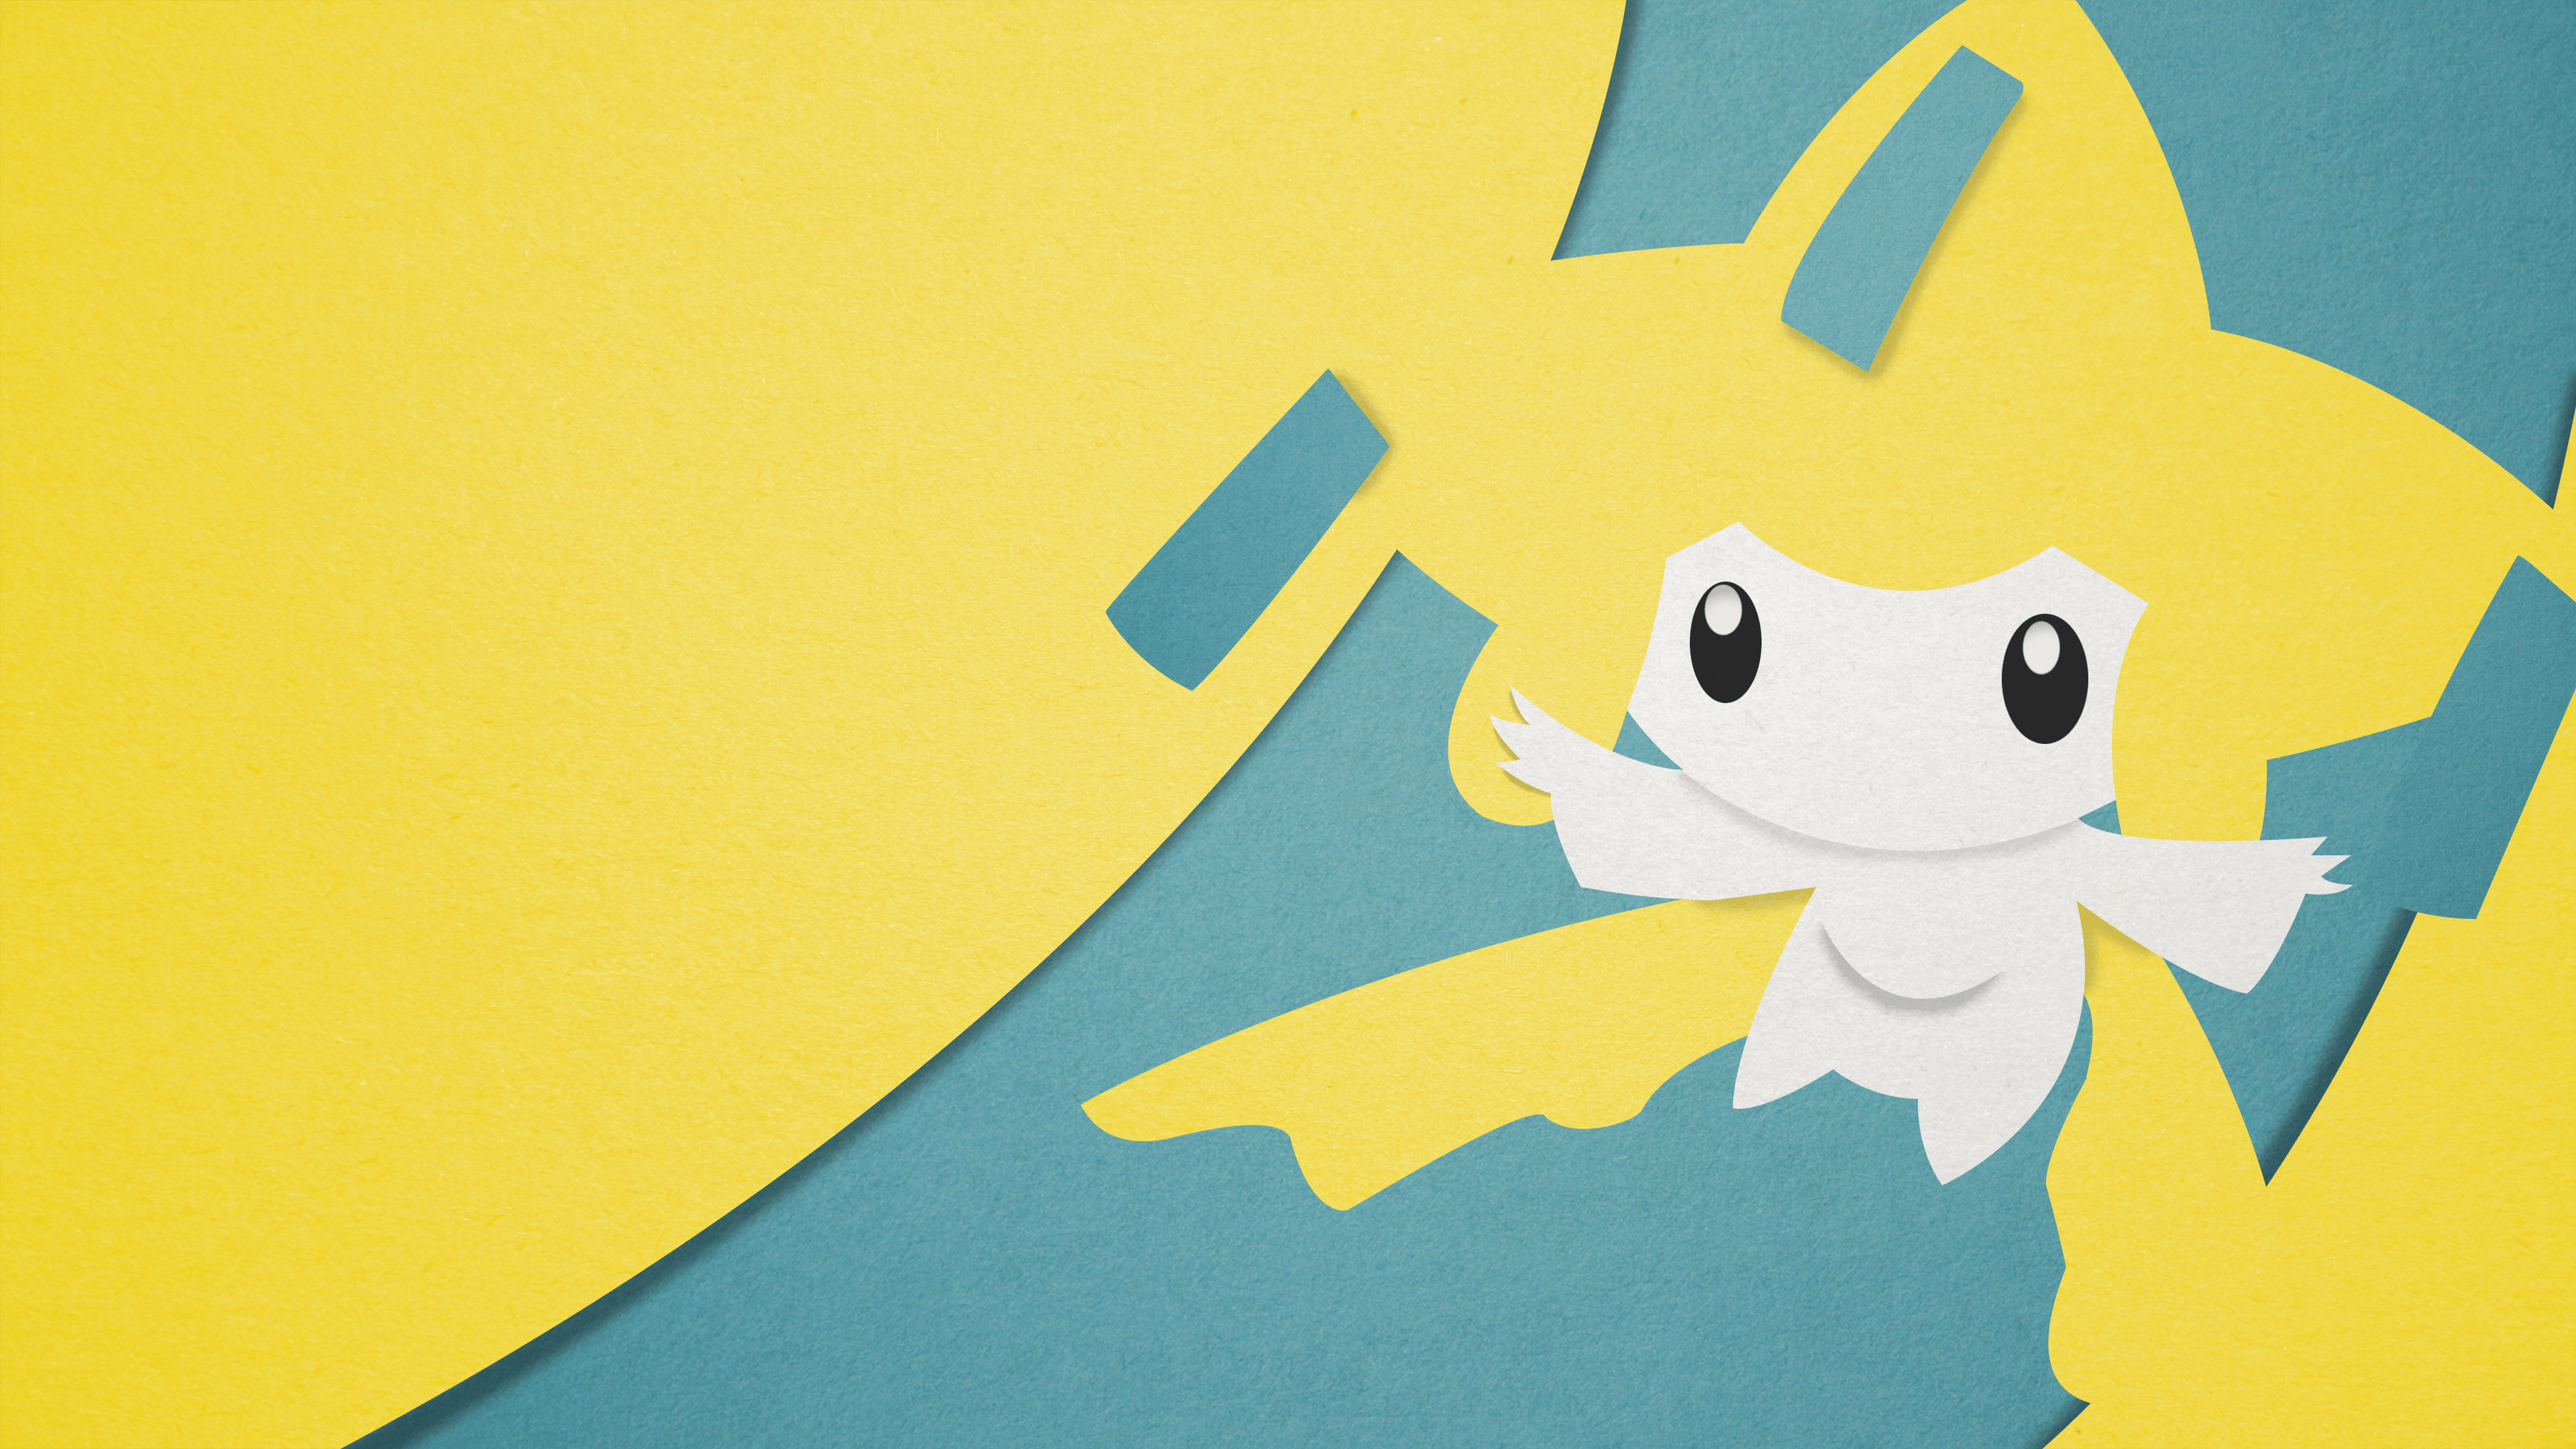 Jirachi - Material Design by EugenianToons on DeviantArt